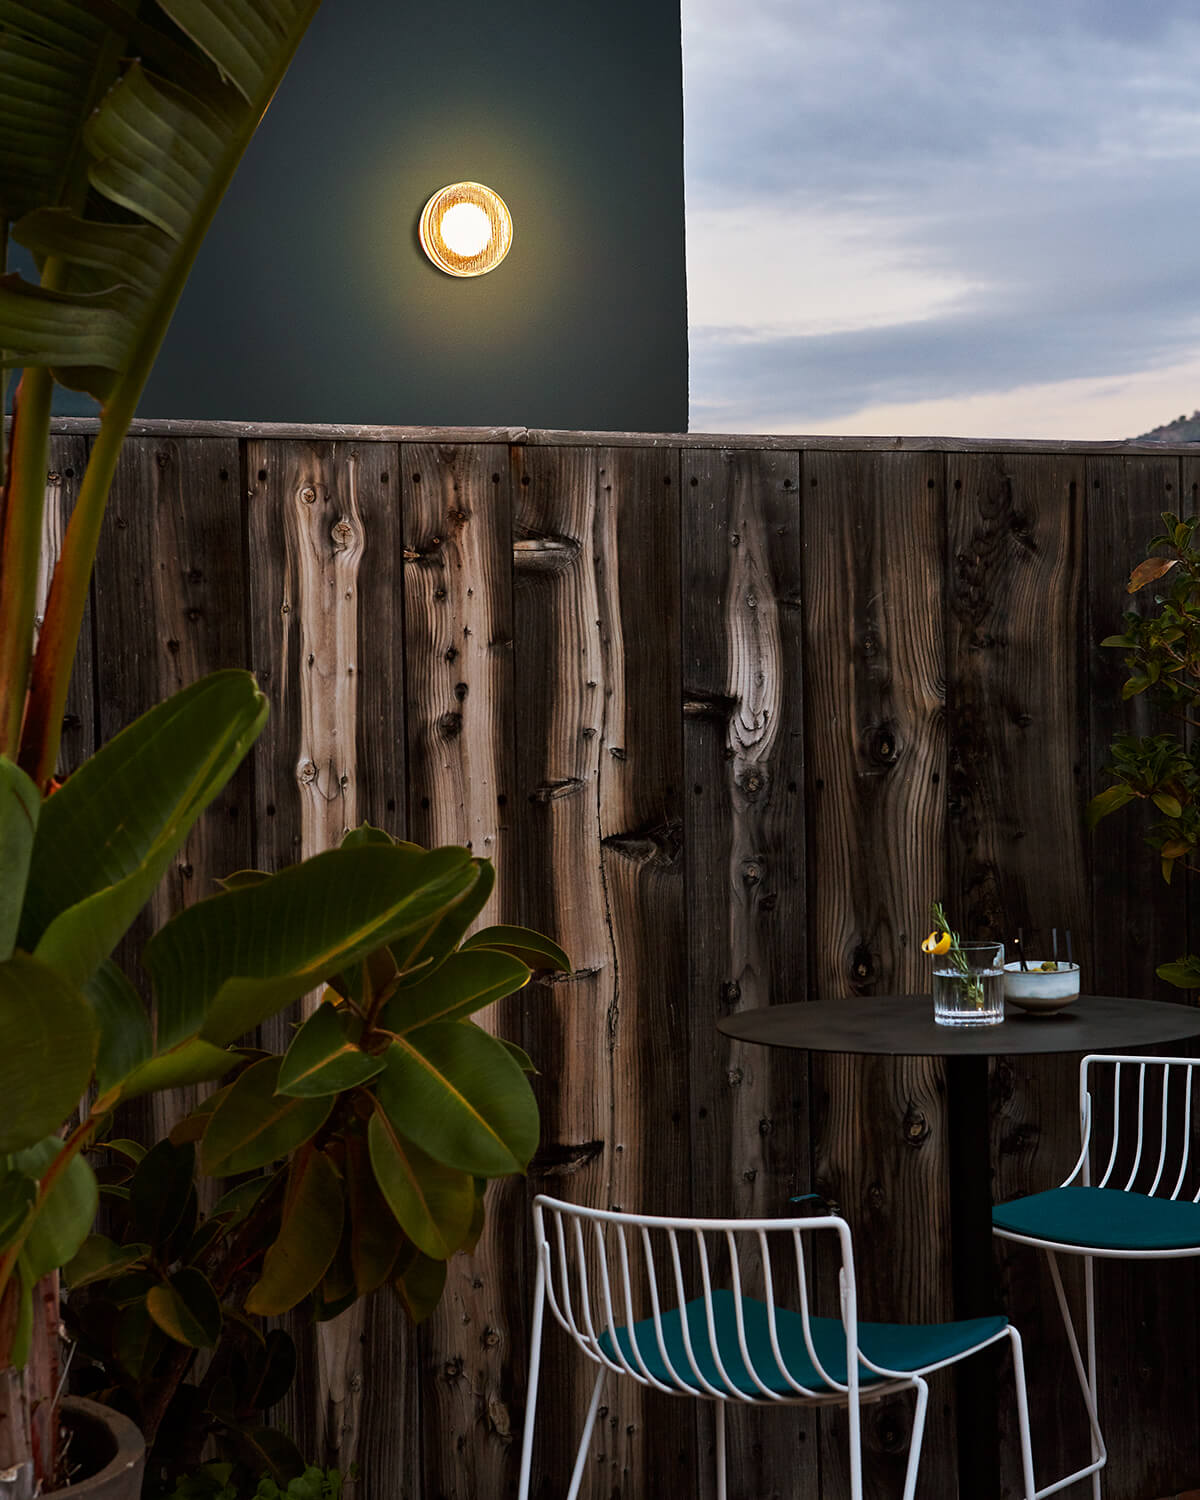 Roc Sconce mounted on a teal wall behind a wooden fence and bar-height seating area